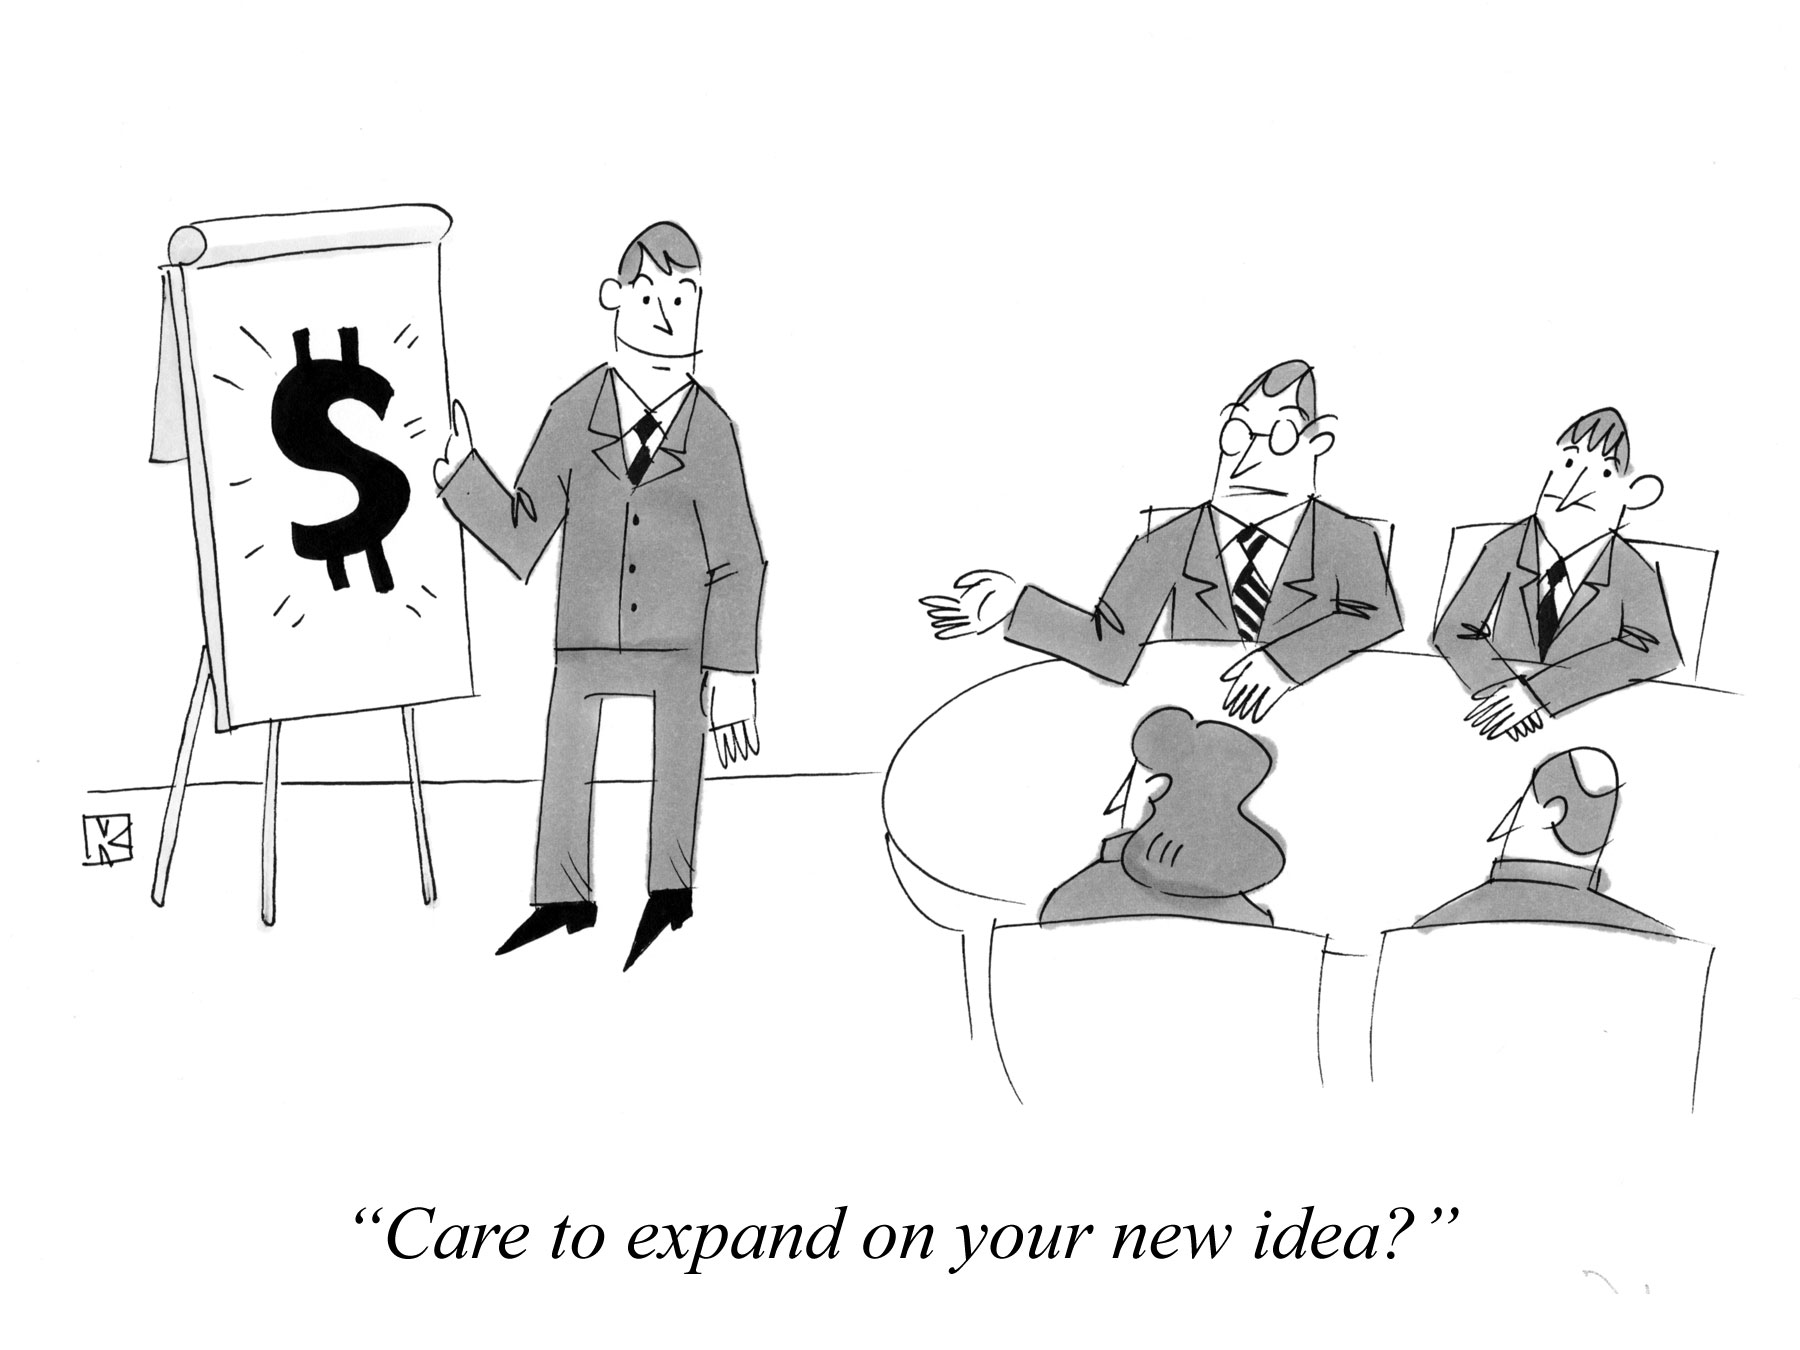 Care to expand on your new idea?